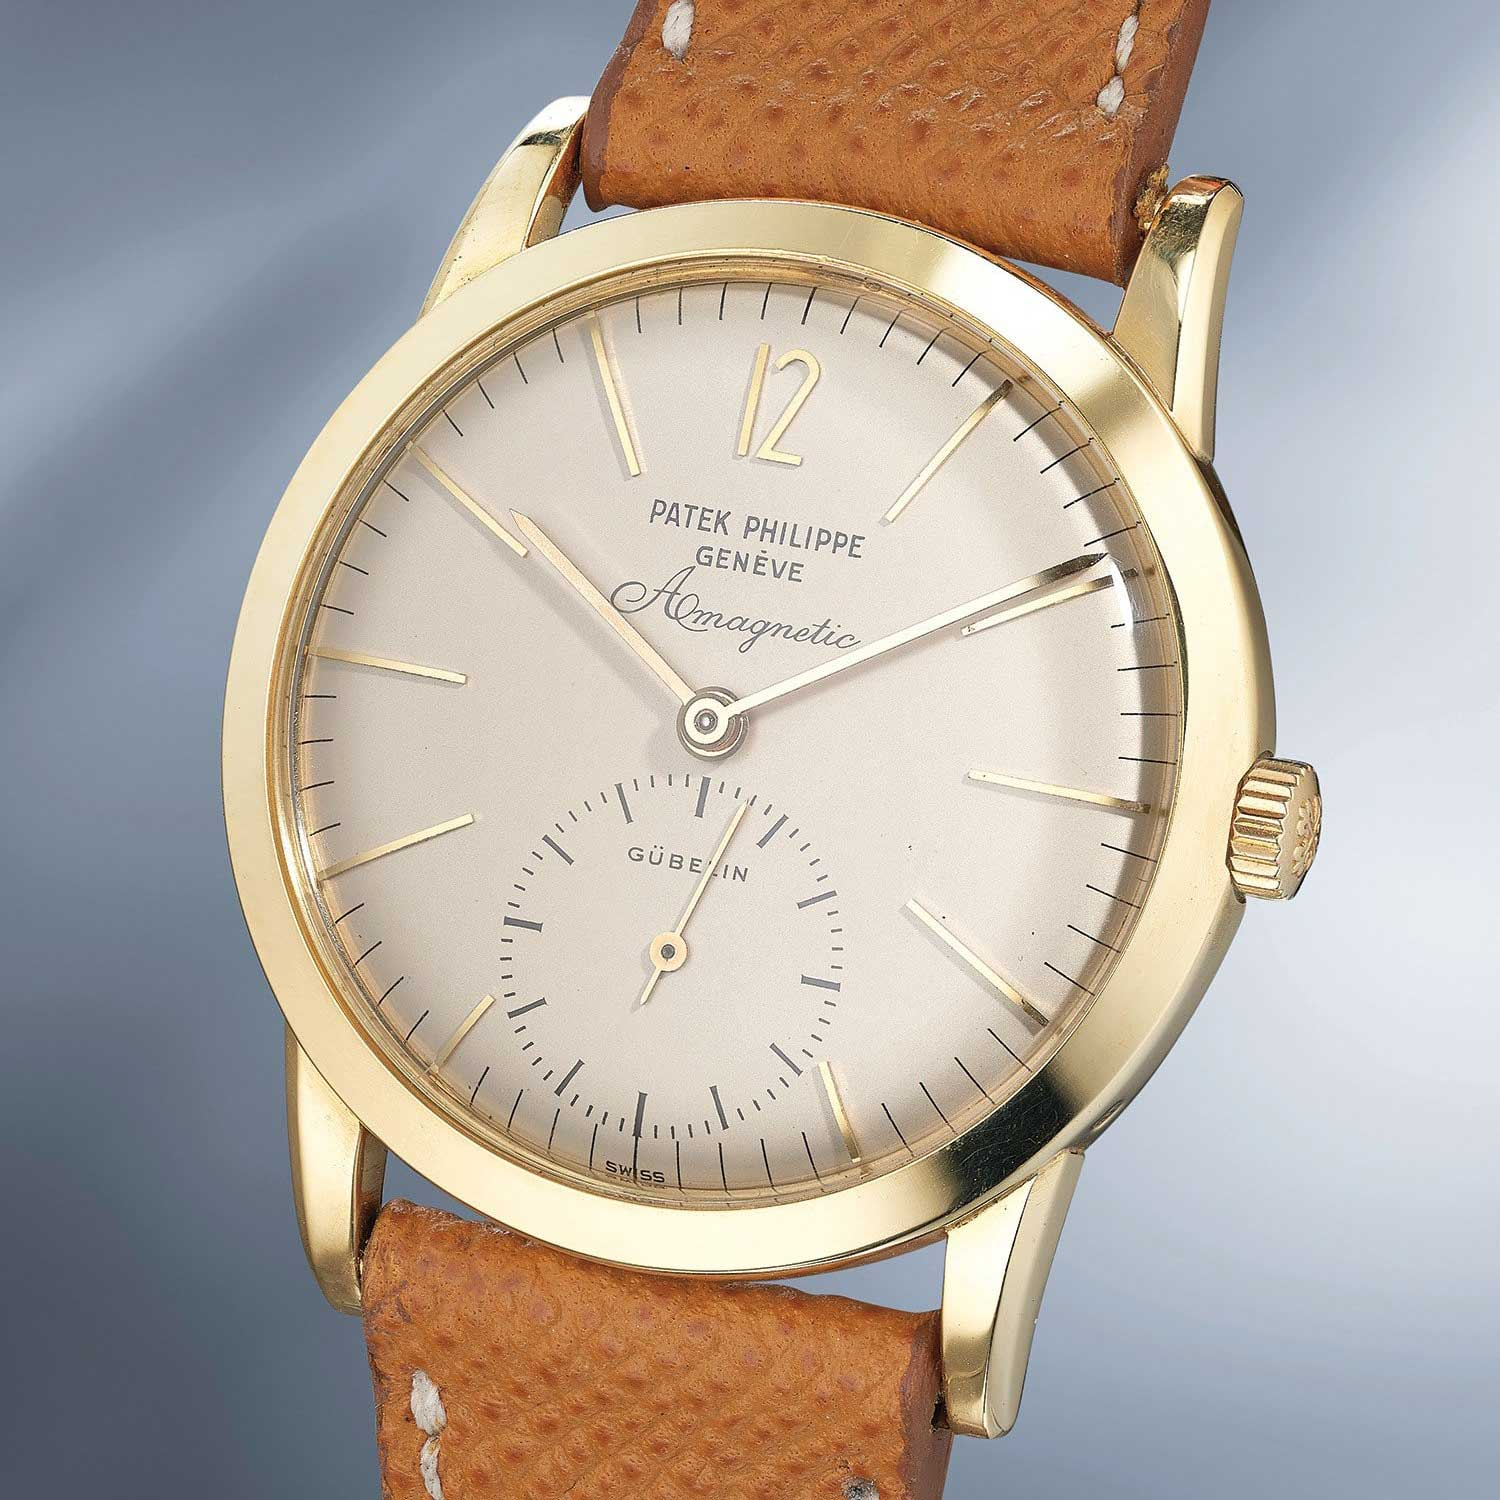 Lot 26: Patek Philippe Ref. 2570-1. An extremely rare and attractive anti-magnetic yellow gold wristwatch with elongated hour-markers